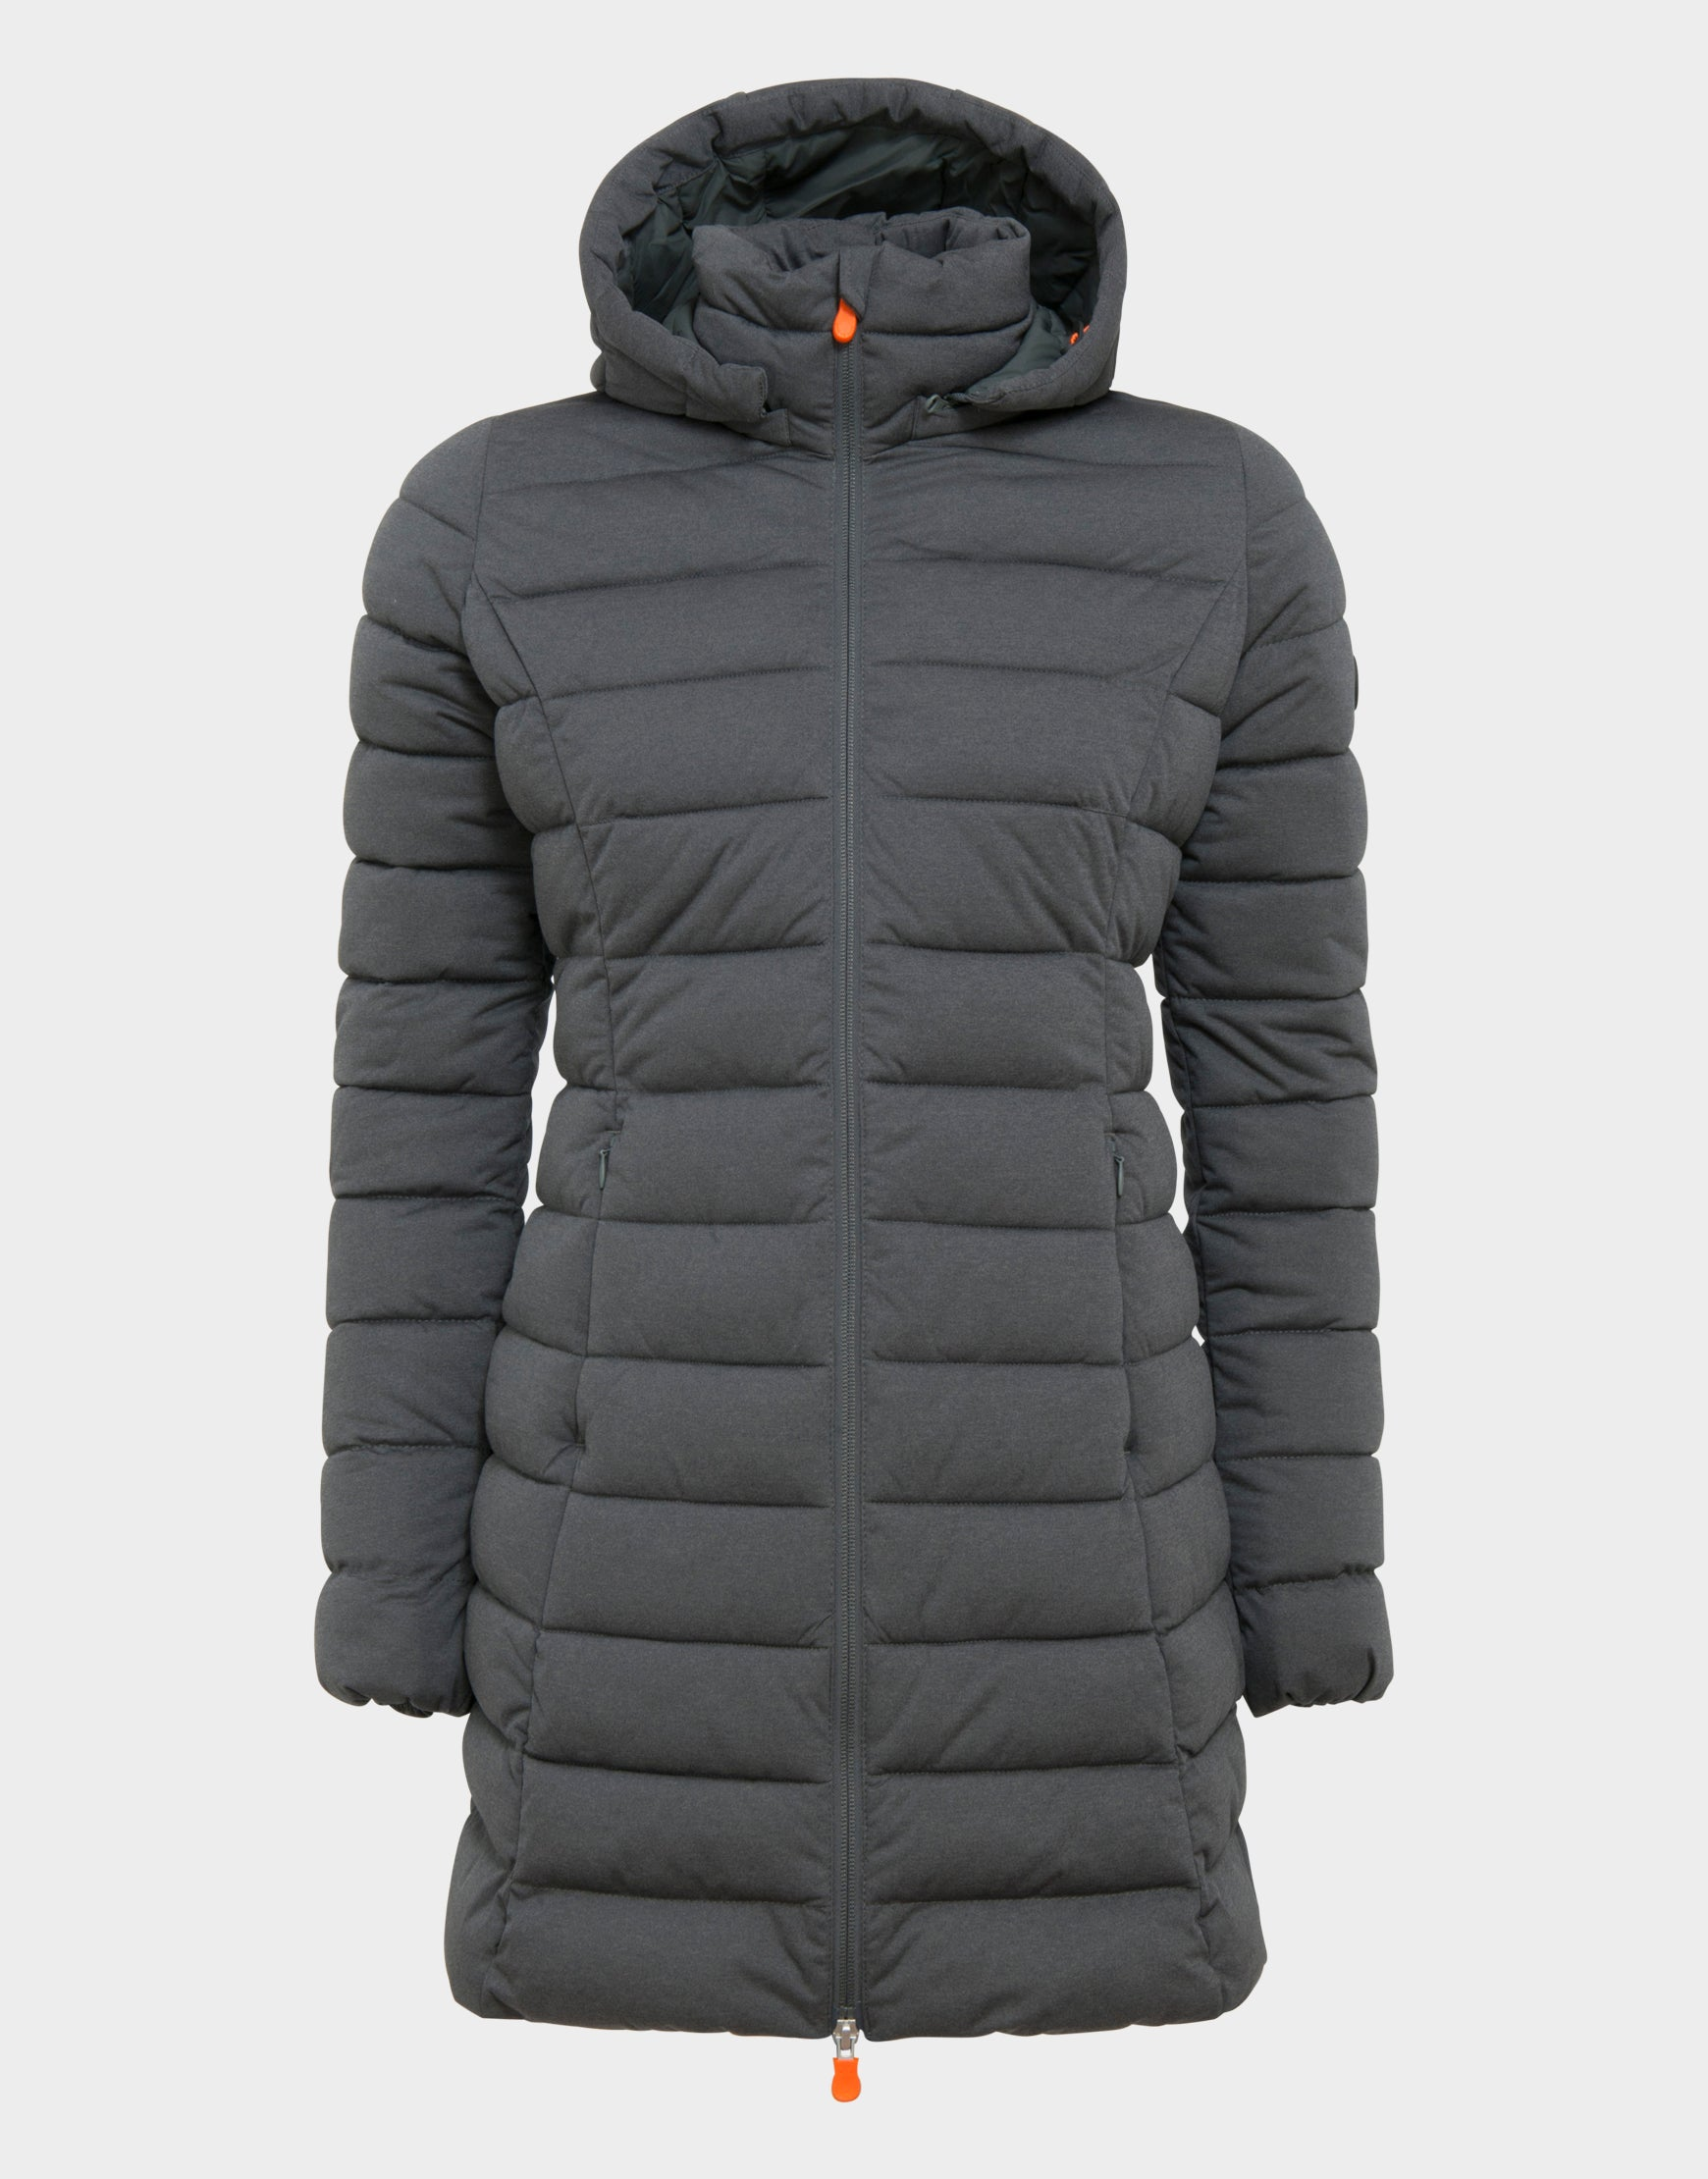 Womens ANGY Hooded Coat in Charcoal Grey Melange